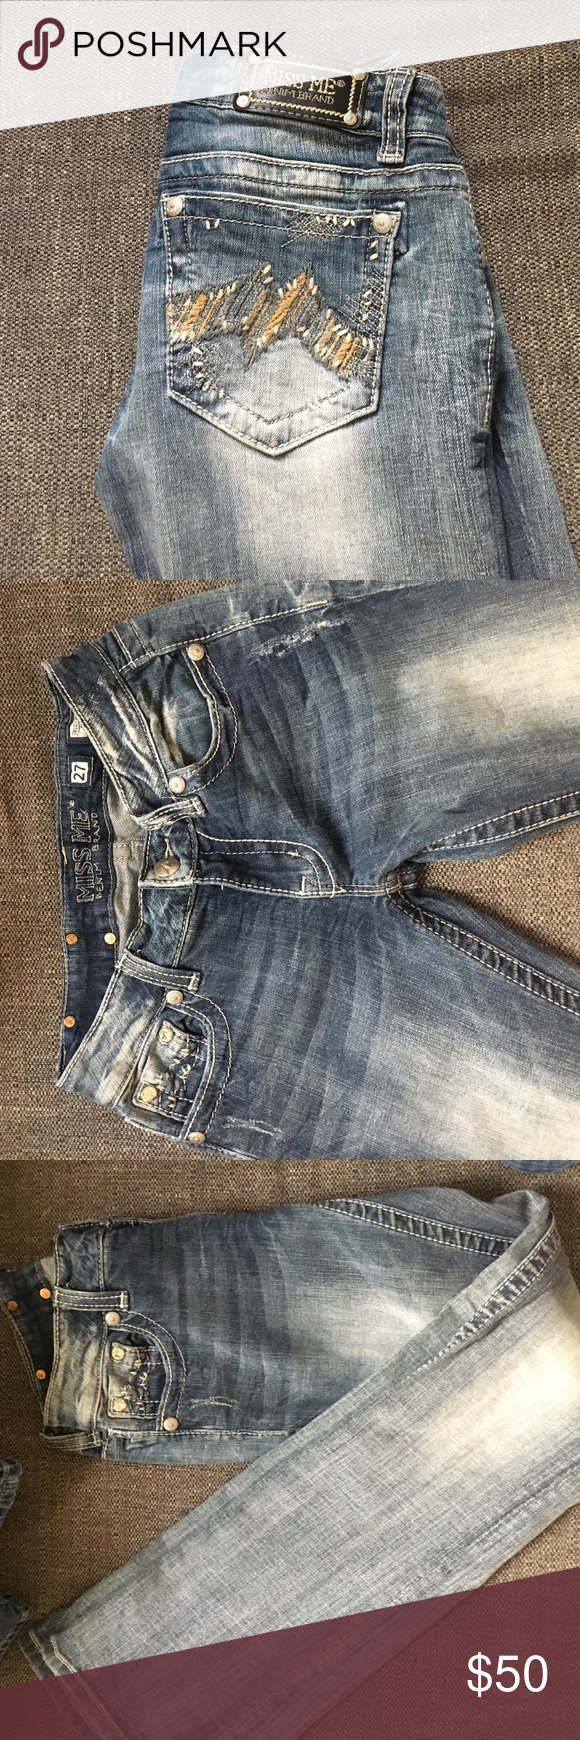 miss me jeans great condition! price is firm Miss Me Jeans Boot Cut